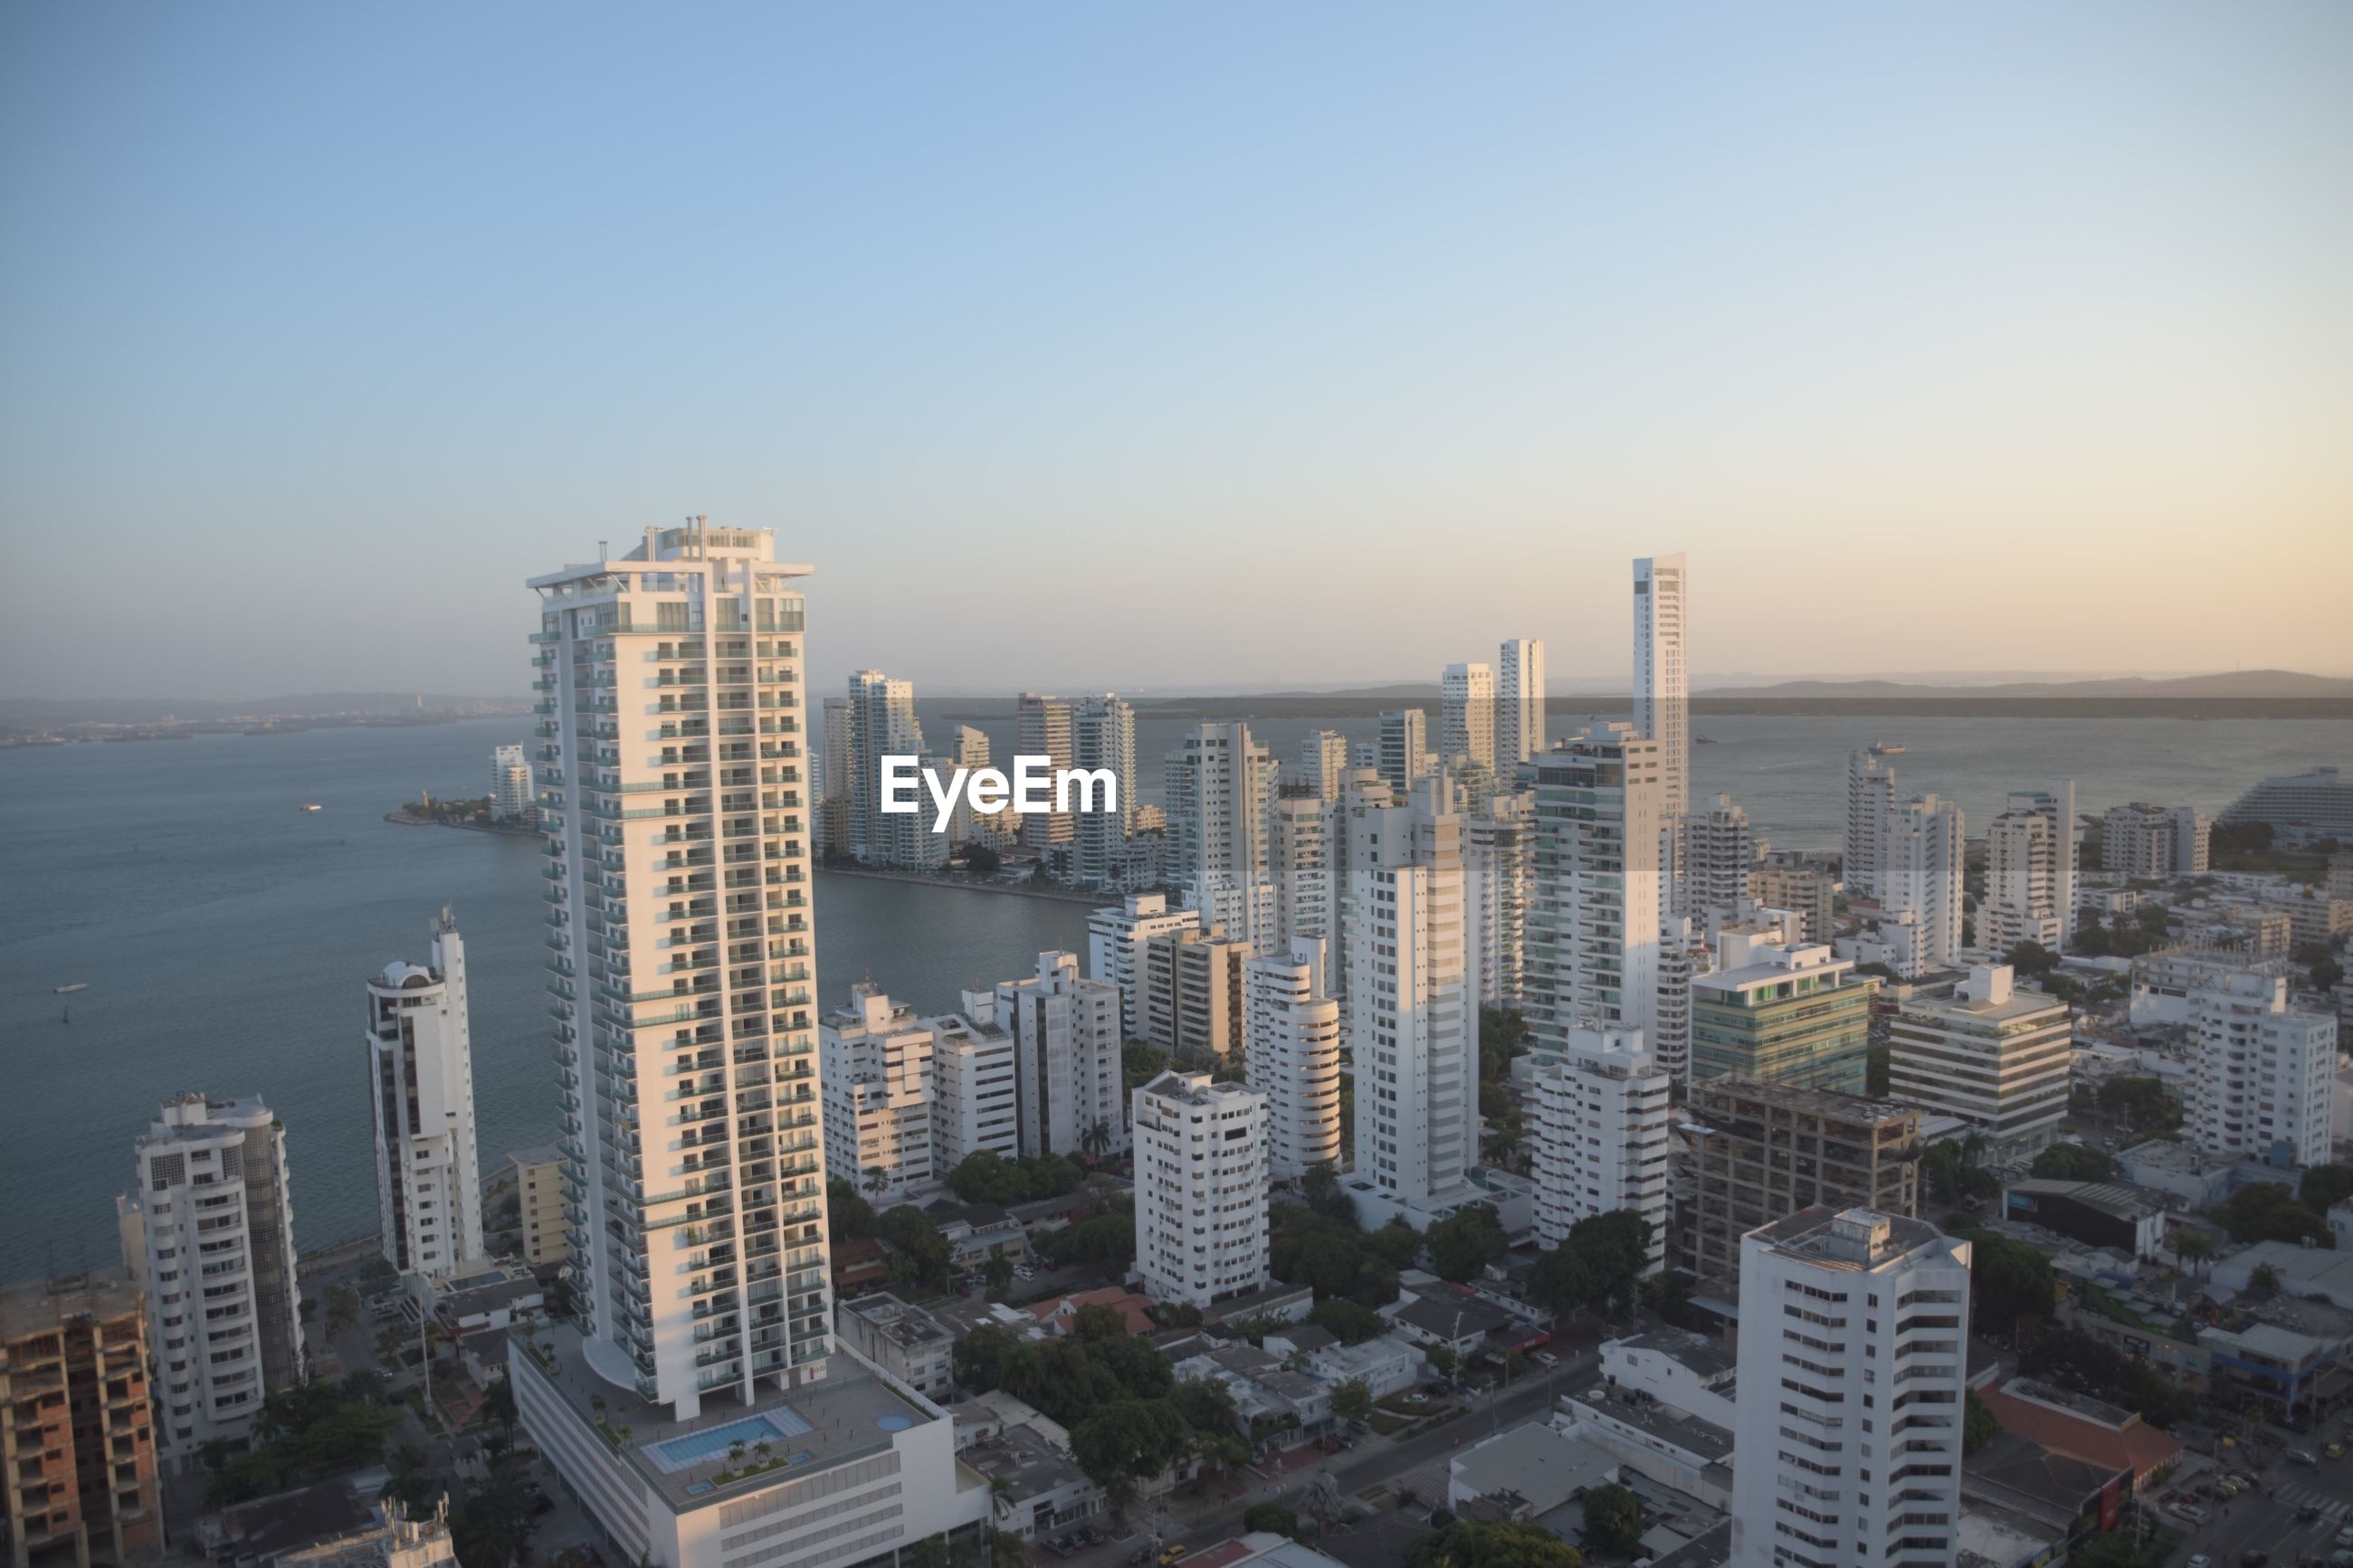 AERIAL VIEW OF BUILDINGS AGAINST SKY IN CITY AGAINST CLEAR BLUE BACKGROUND